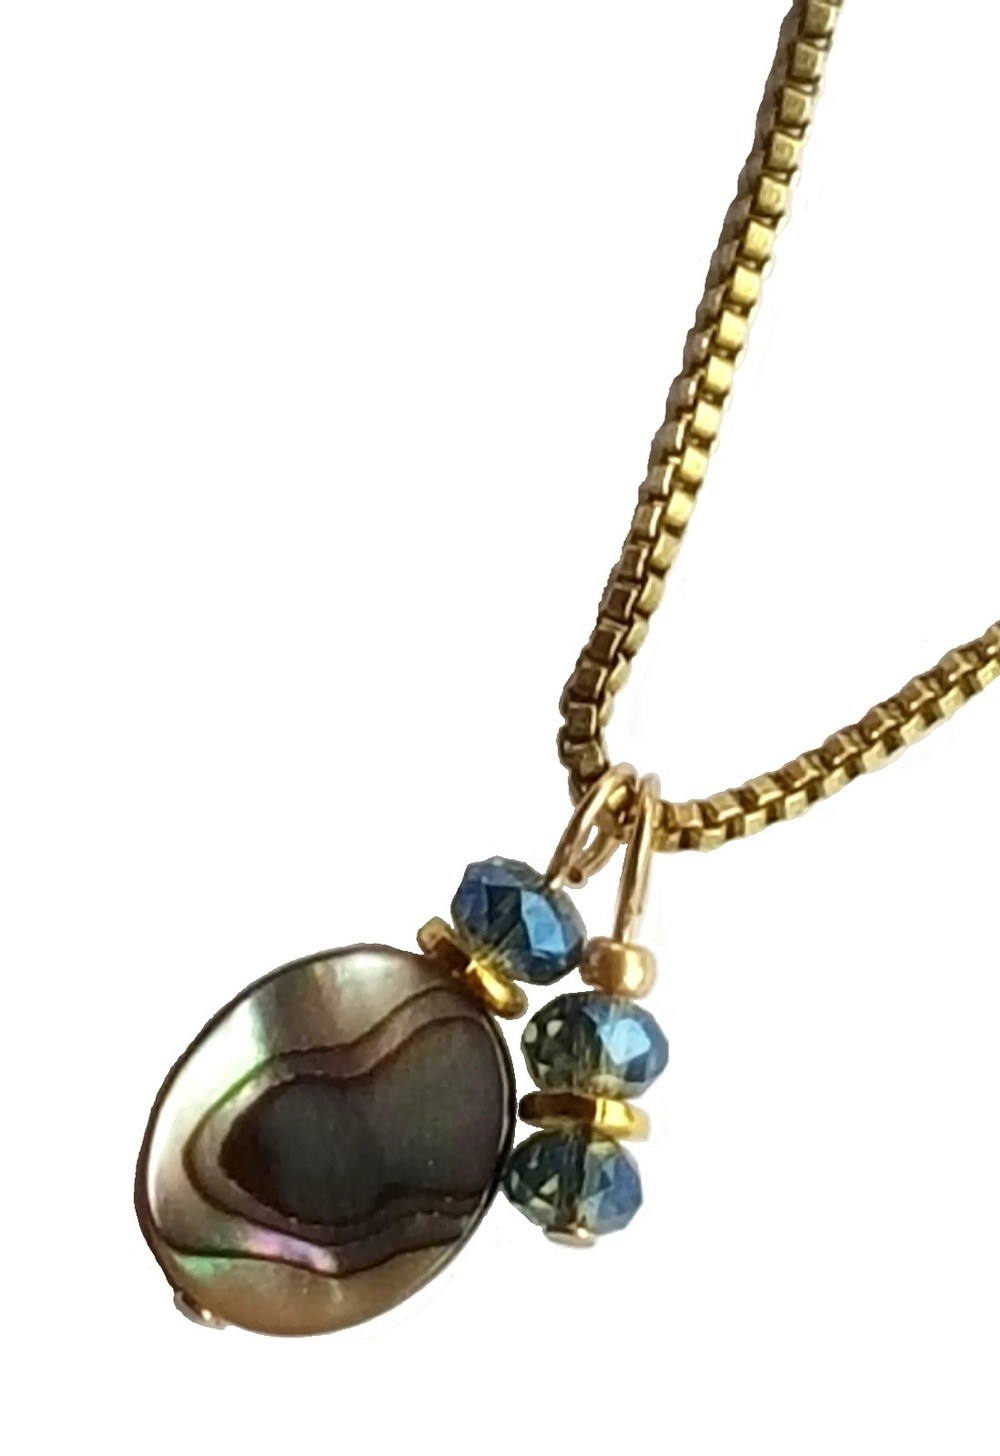 abalone pendant on gold chain close up